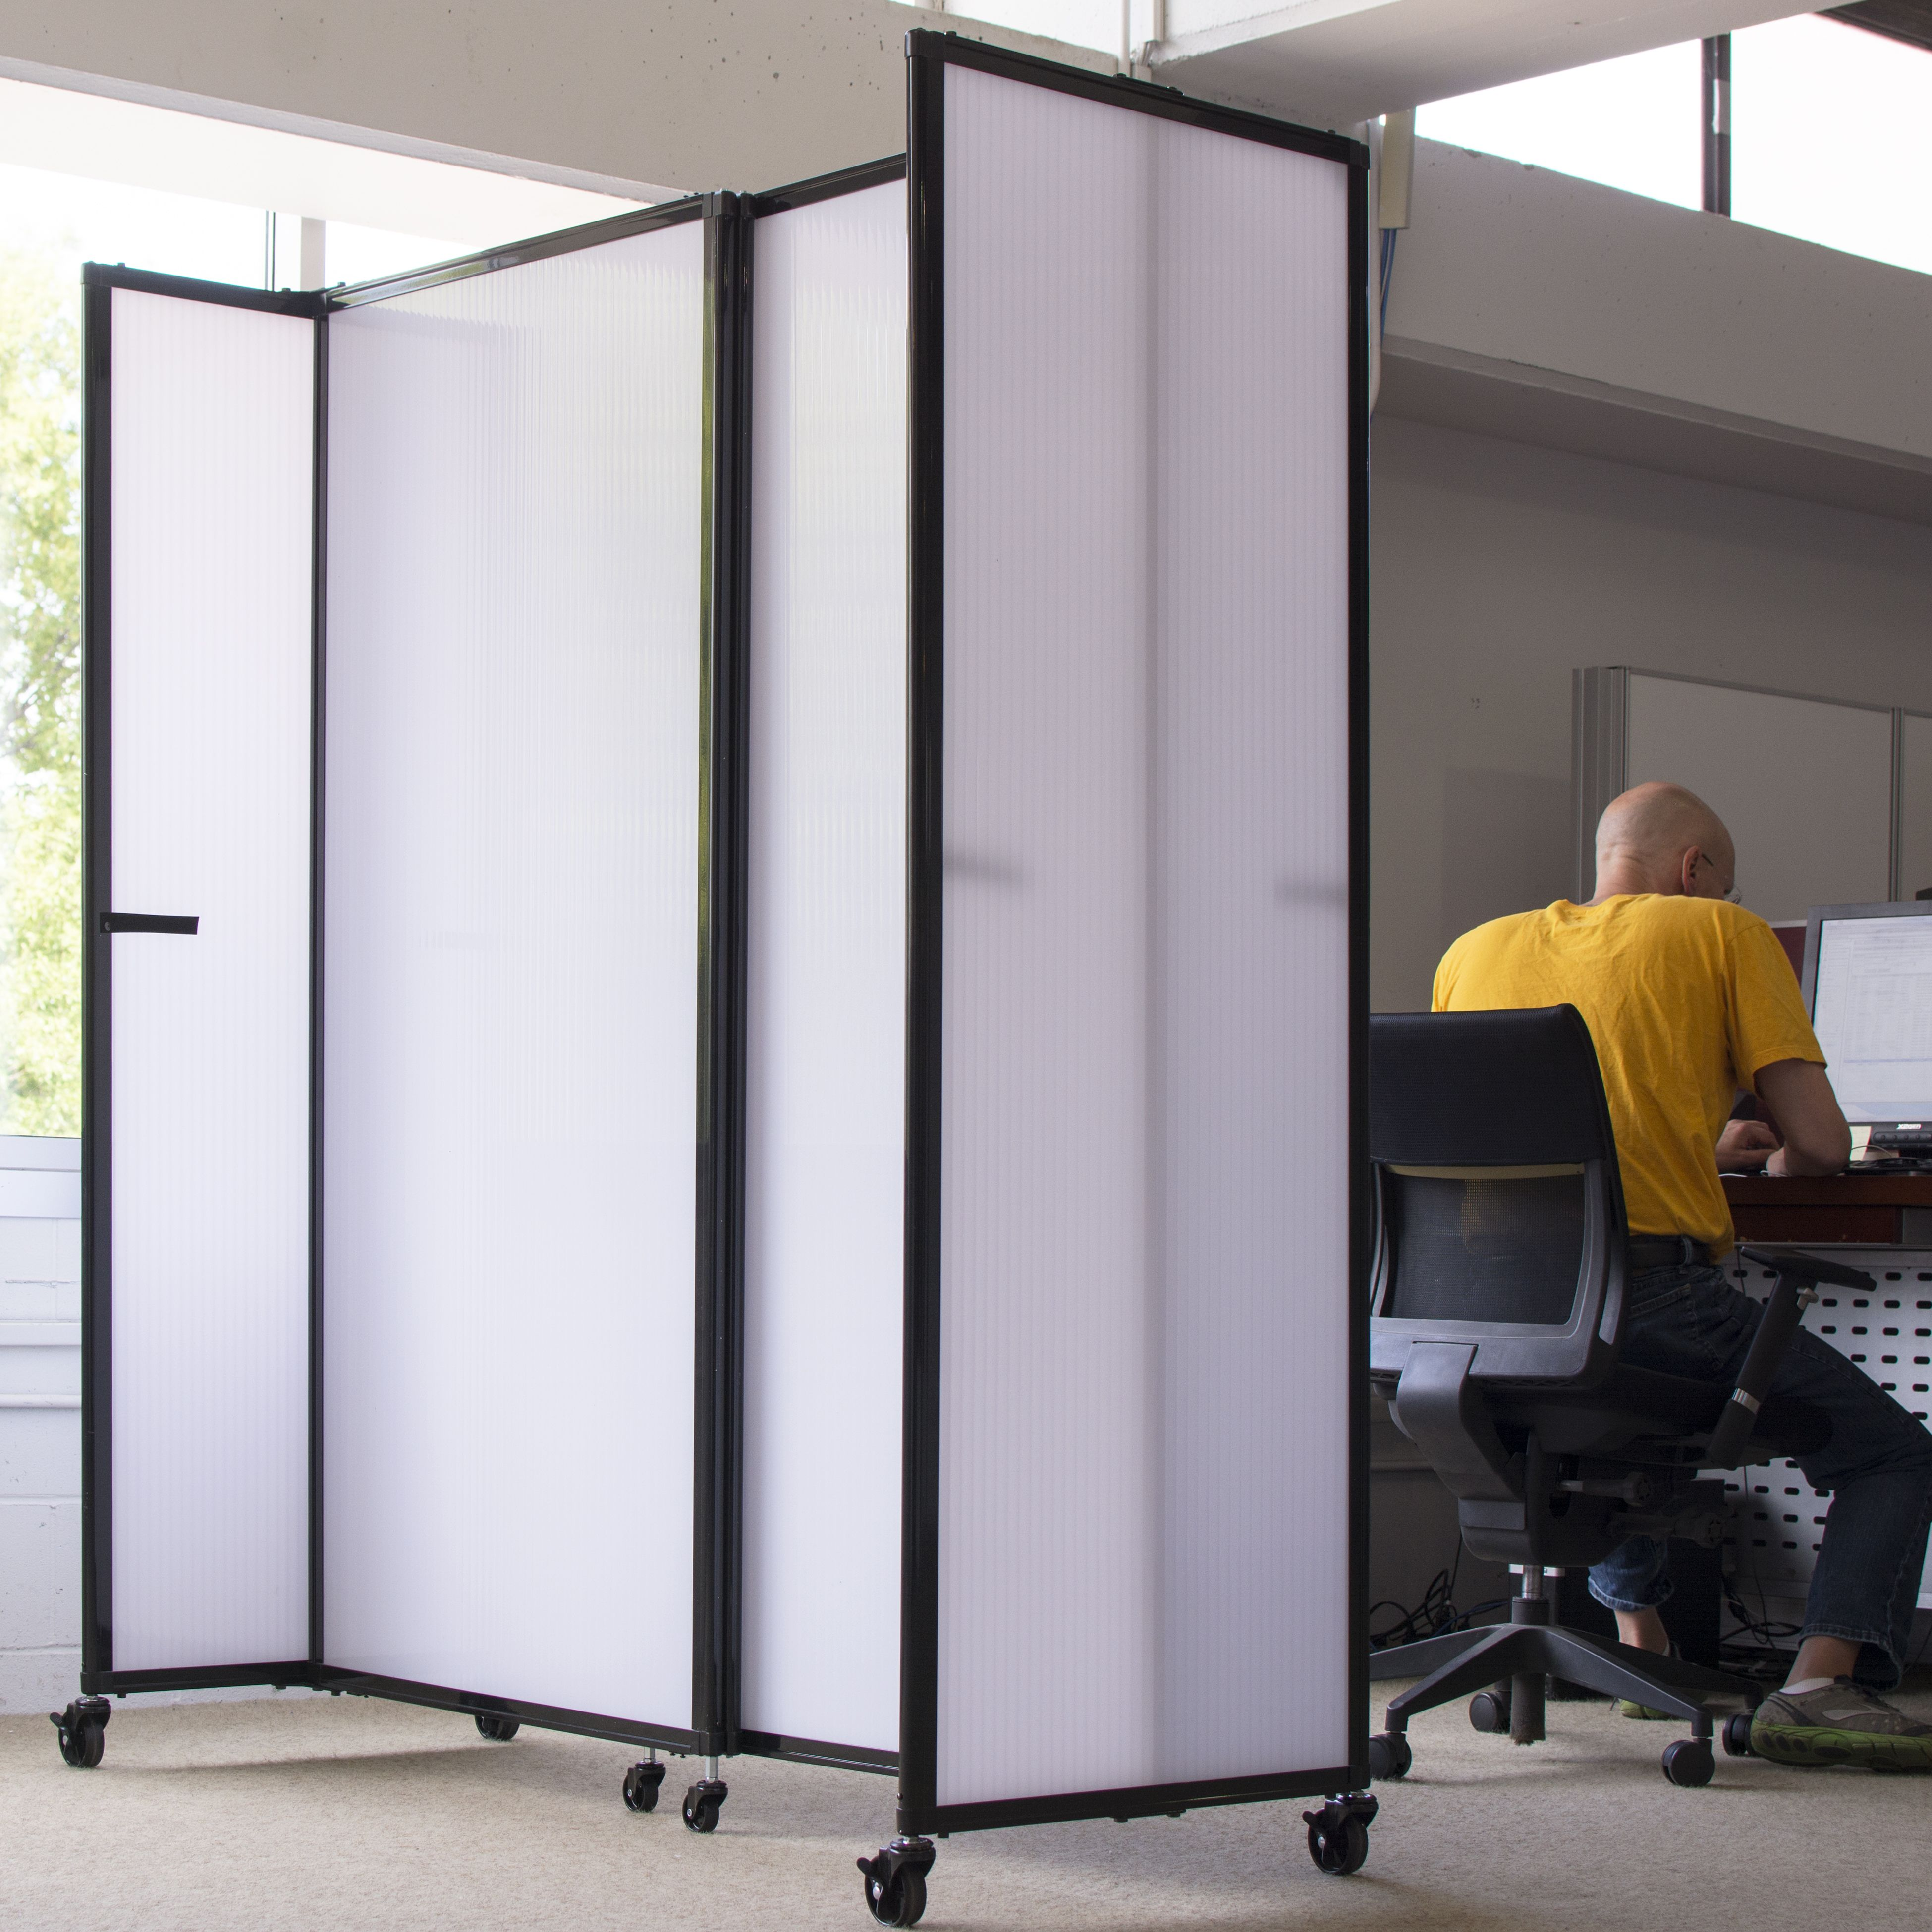 Office Dividers To Add Privacy To An Open Plan Office Office